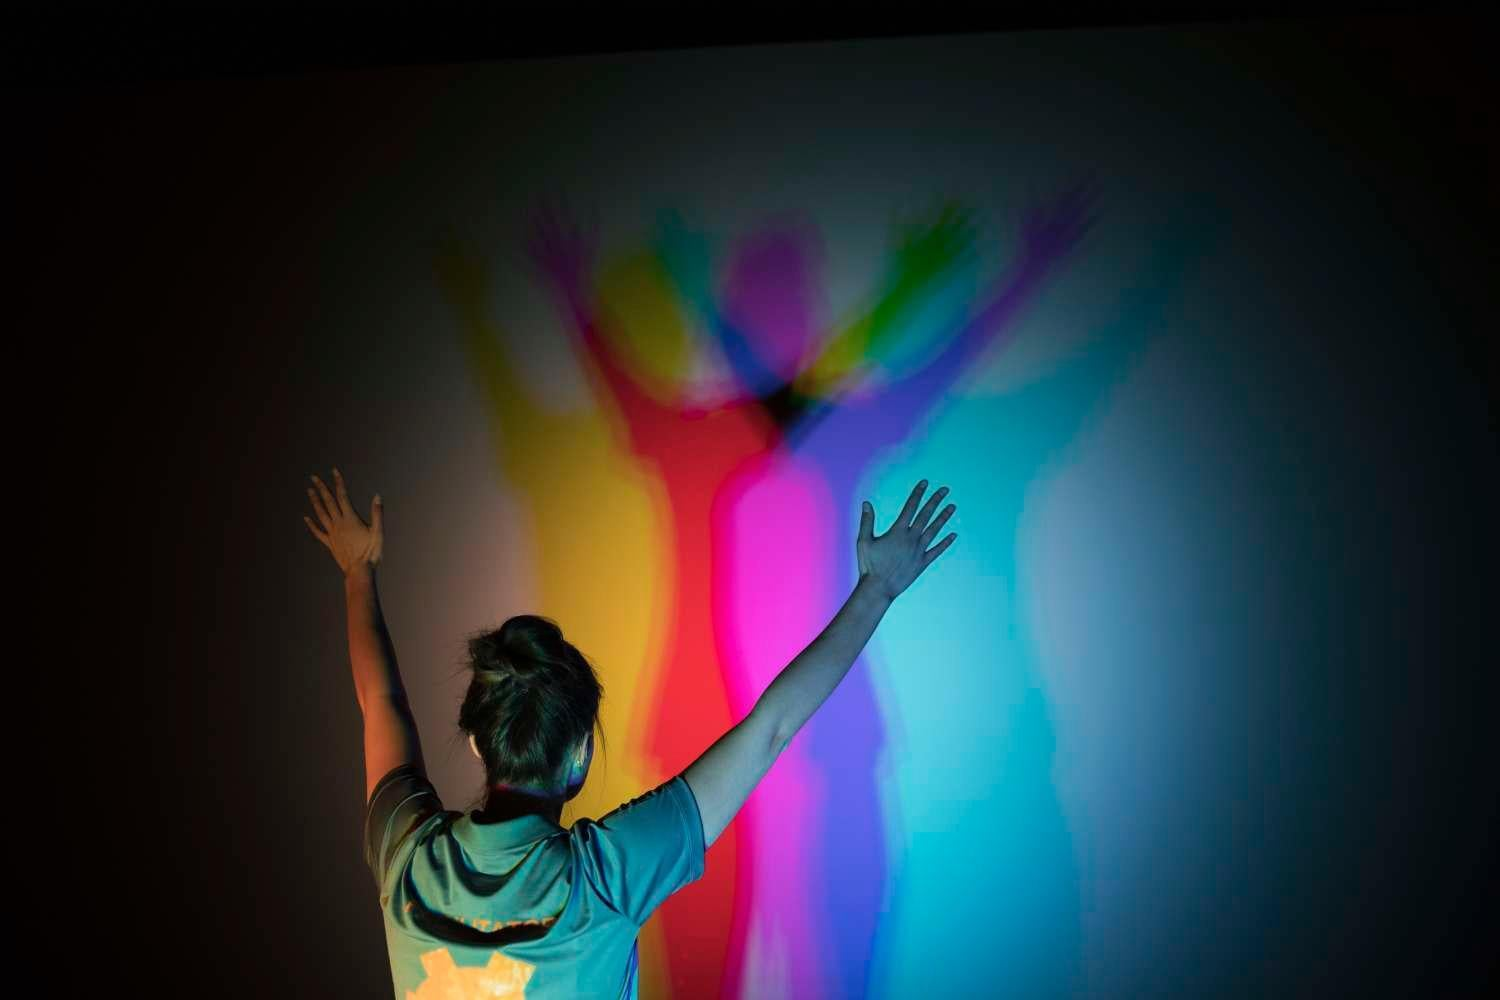 Woman with arms raised views her shadow as a spectrum of colors on wall